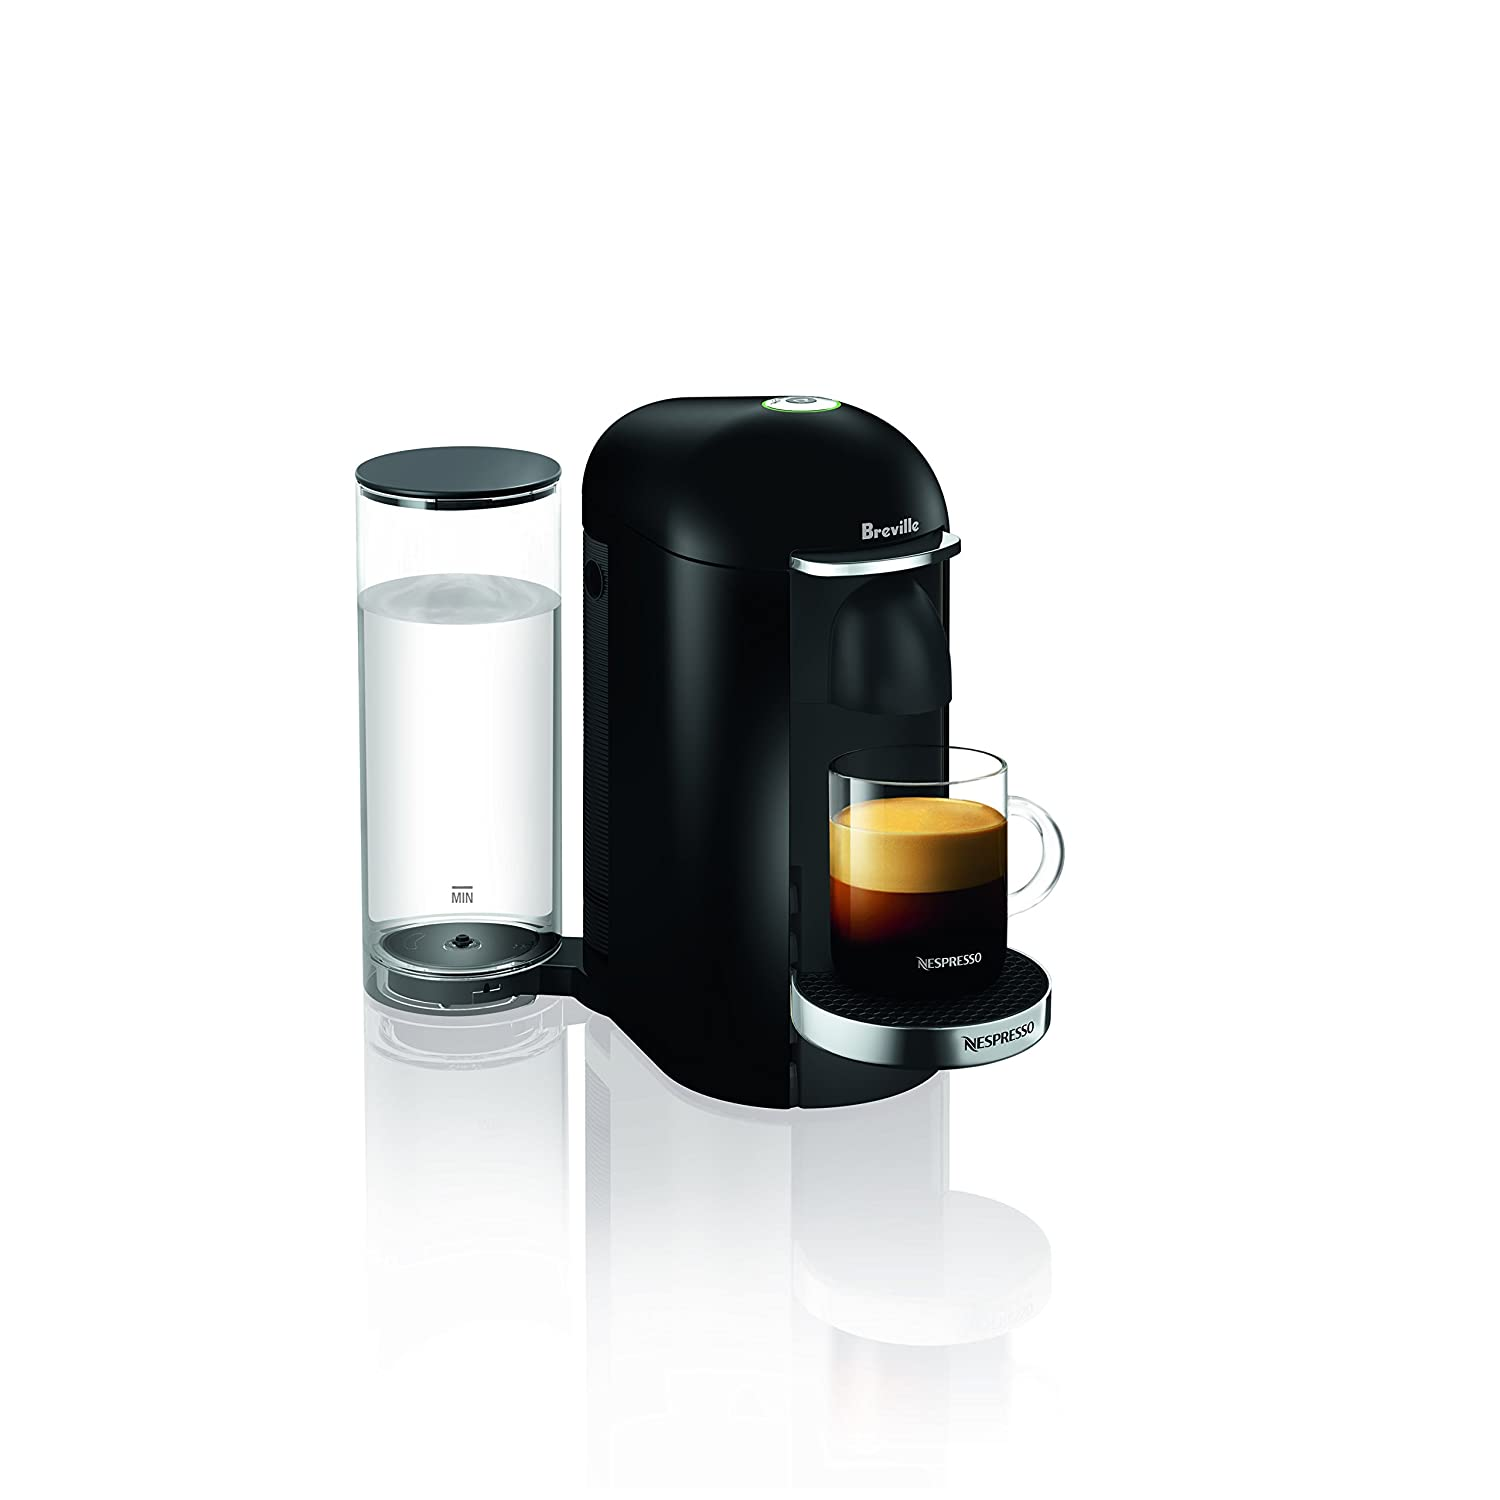 Nespresso VertuoPlus Deluxe Coffee and Espresso Machine by Breville, Black